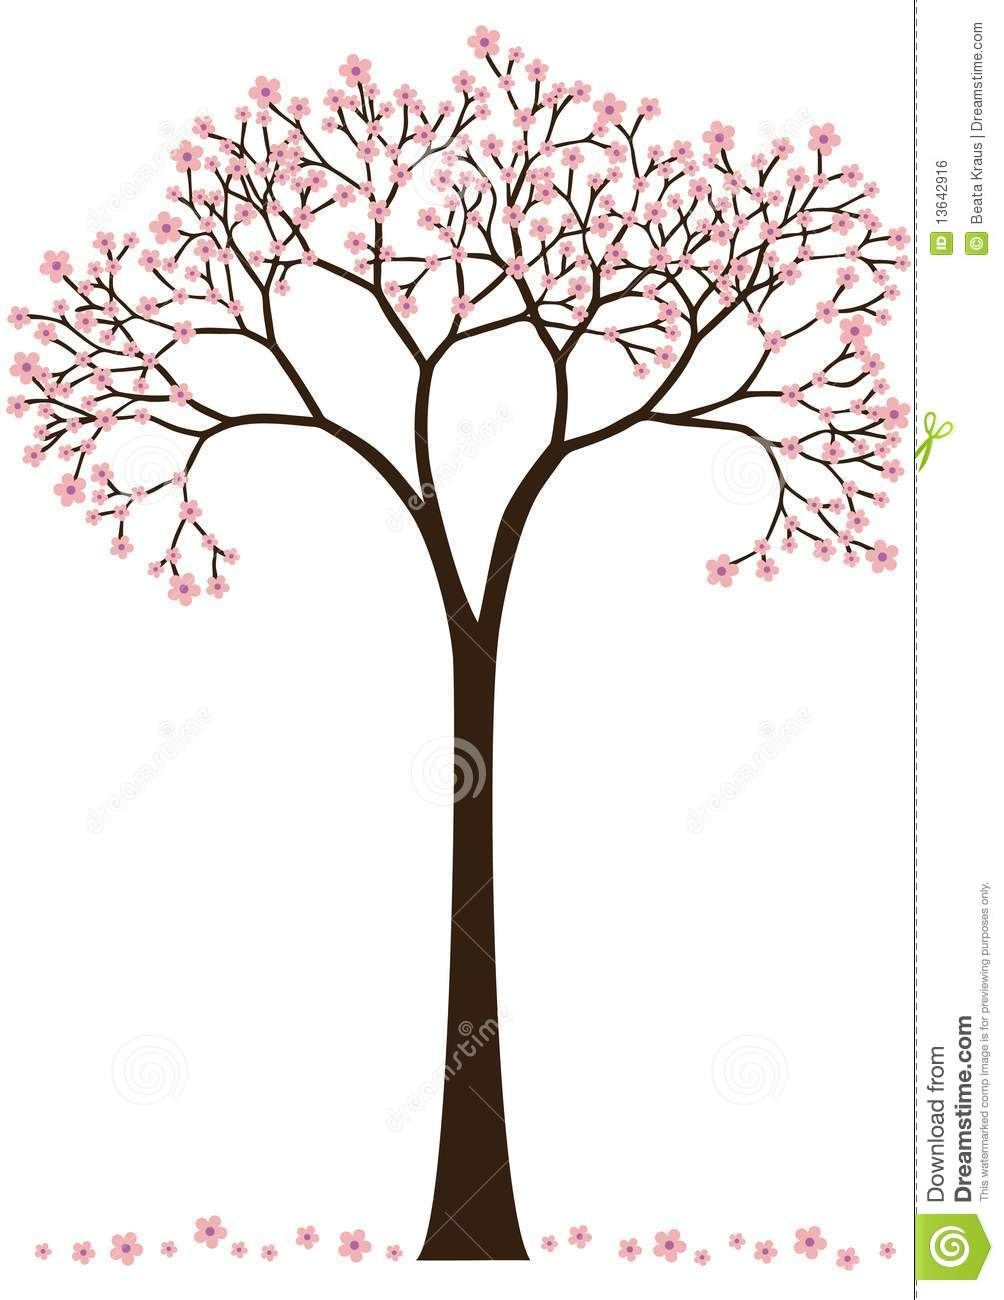 Cherry Blossom Tree Stock Vector Illustration Of Graphic 13642916